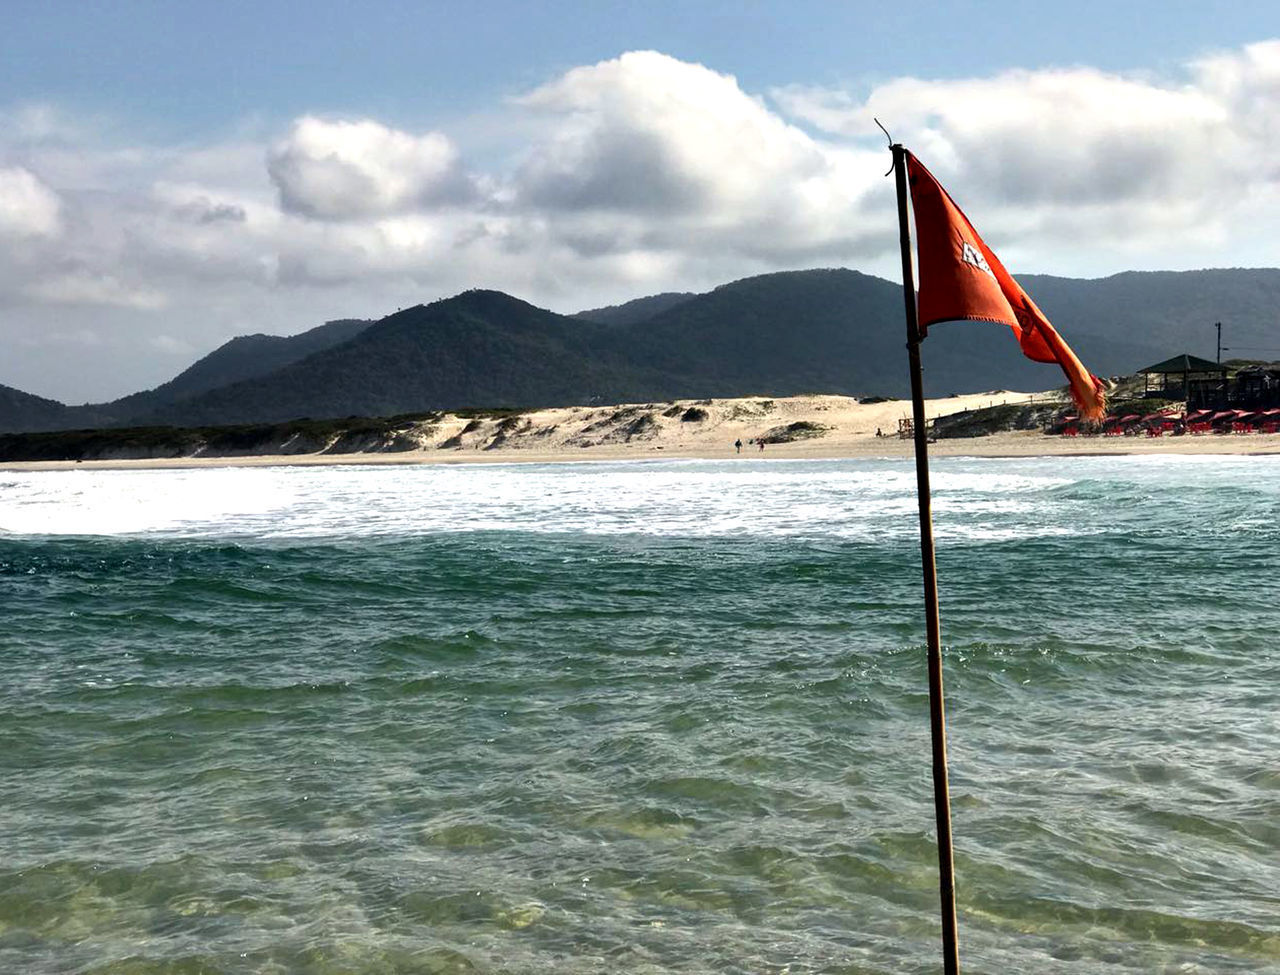 mountain, water, flag, sky, sea, cloud - sky, beauty in nature, motion, nature, scenics - nature, patriotism, no people, day, mountain range, waterfront, tranquil scene, beach, land, outdoors, wind